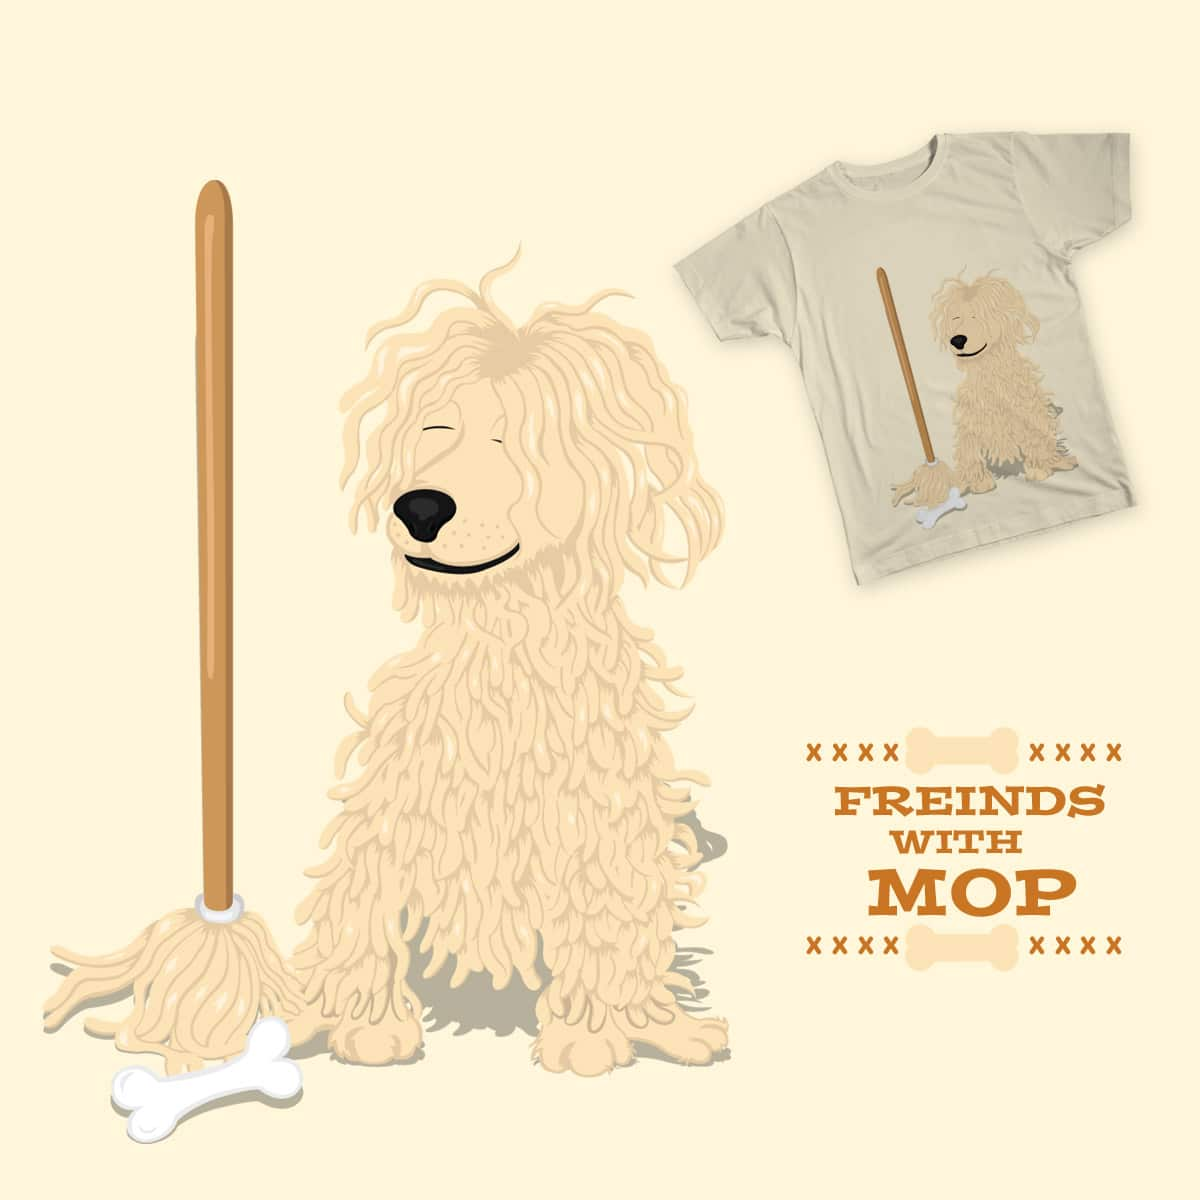 Friends With Mop by Pancake_Panda on Threadless